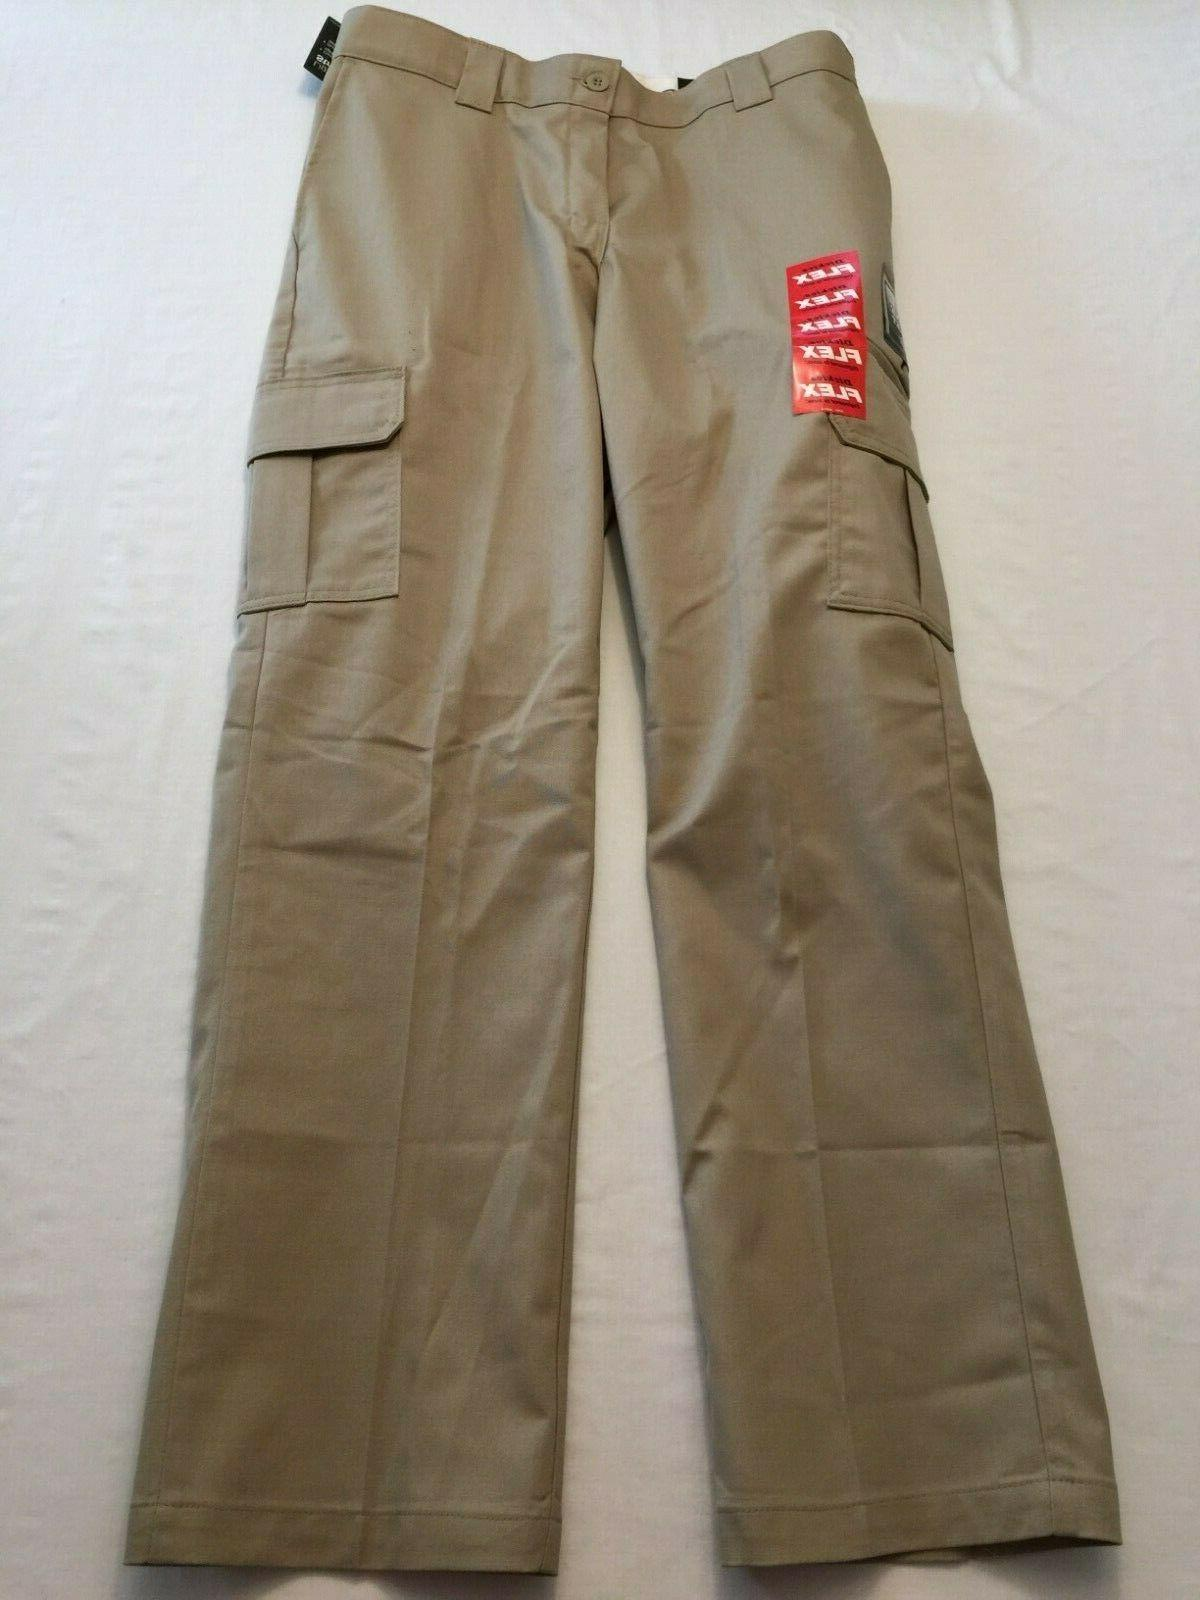 NWT MEN'S DP Regular Fit Dickies Work